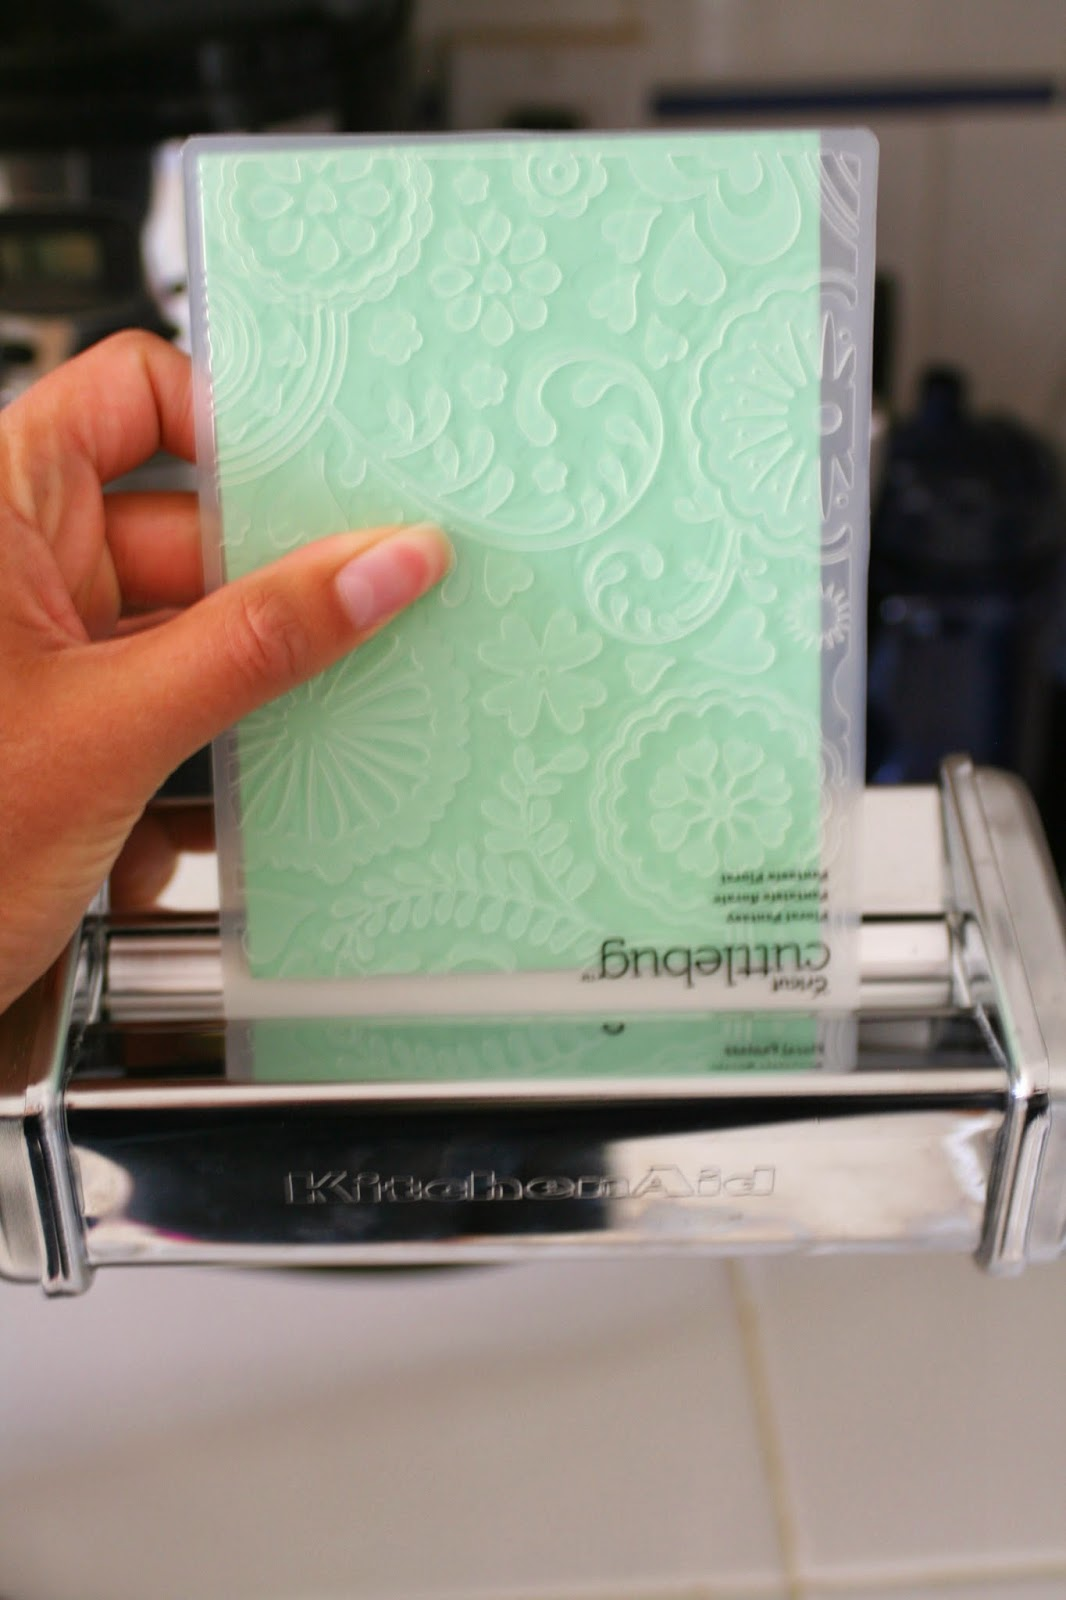 paper embossing Die cut and emboss machines give you the versatility to make amazing projects with shapes and texture save on the paper embossers online.